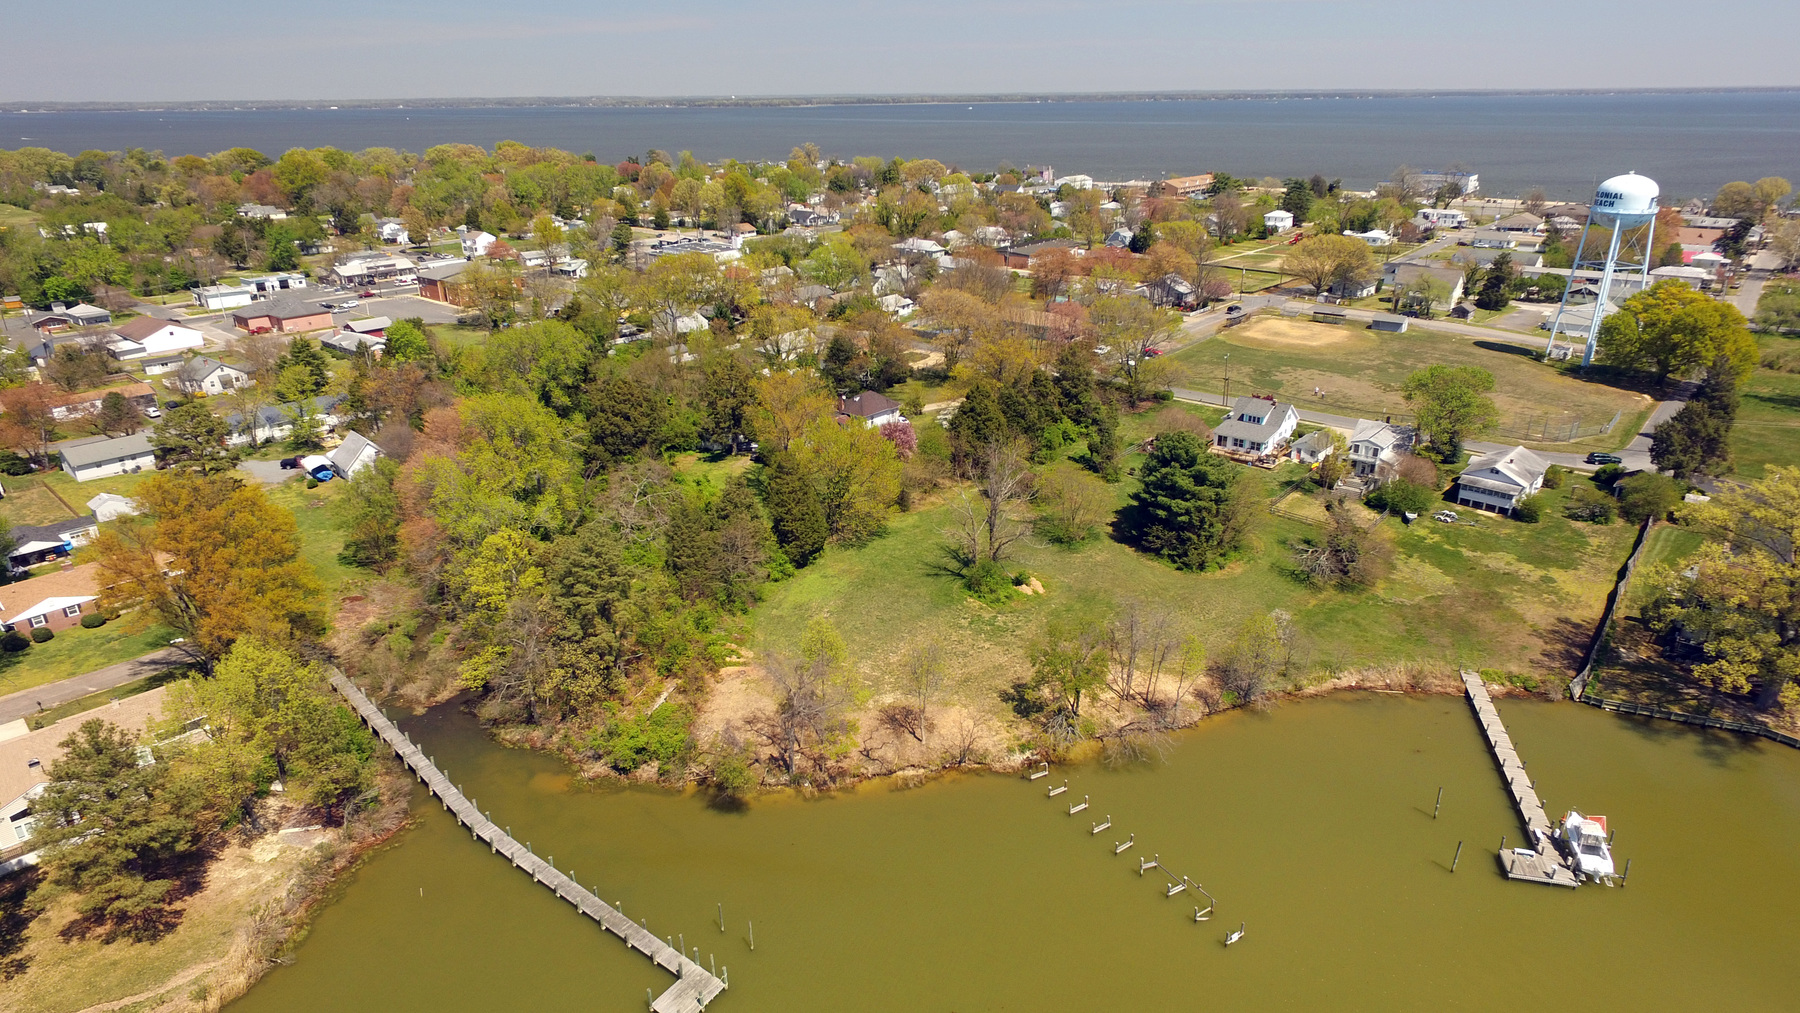 Land for Sale at 300 Lynnhaven Avenue, Colonial Beach Colonial Beach, Virginia 22443 United States